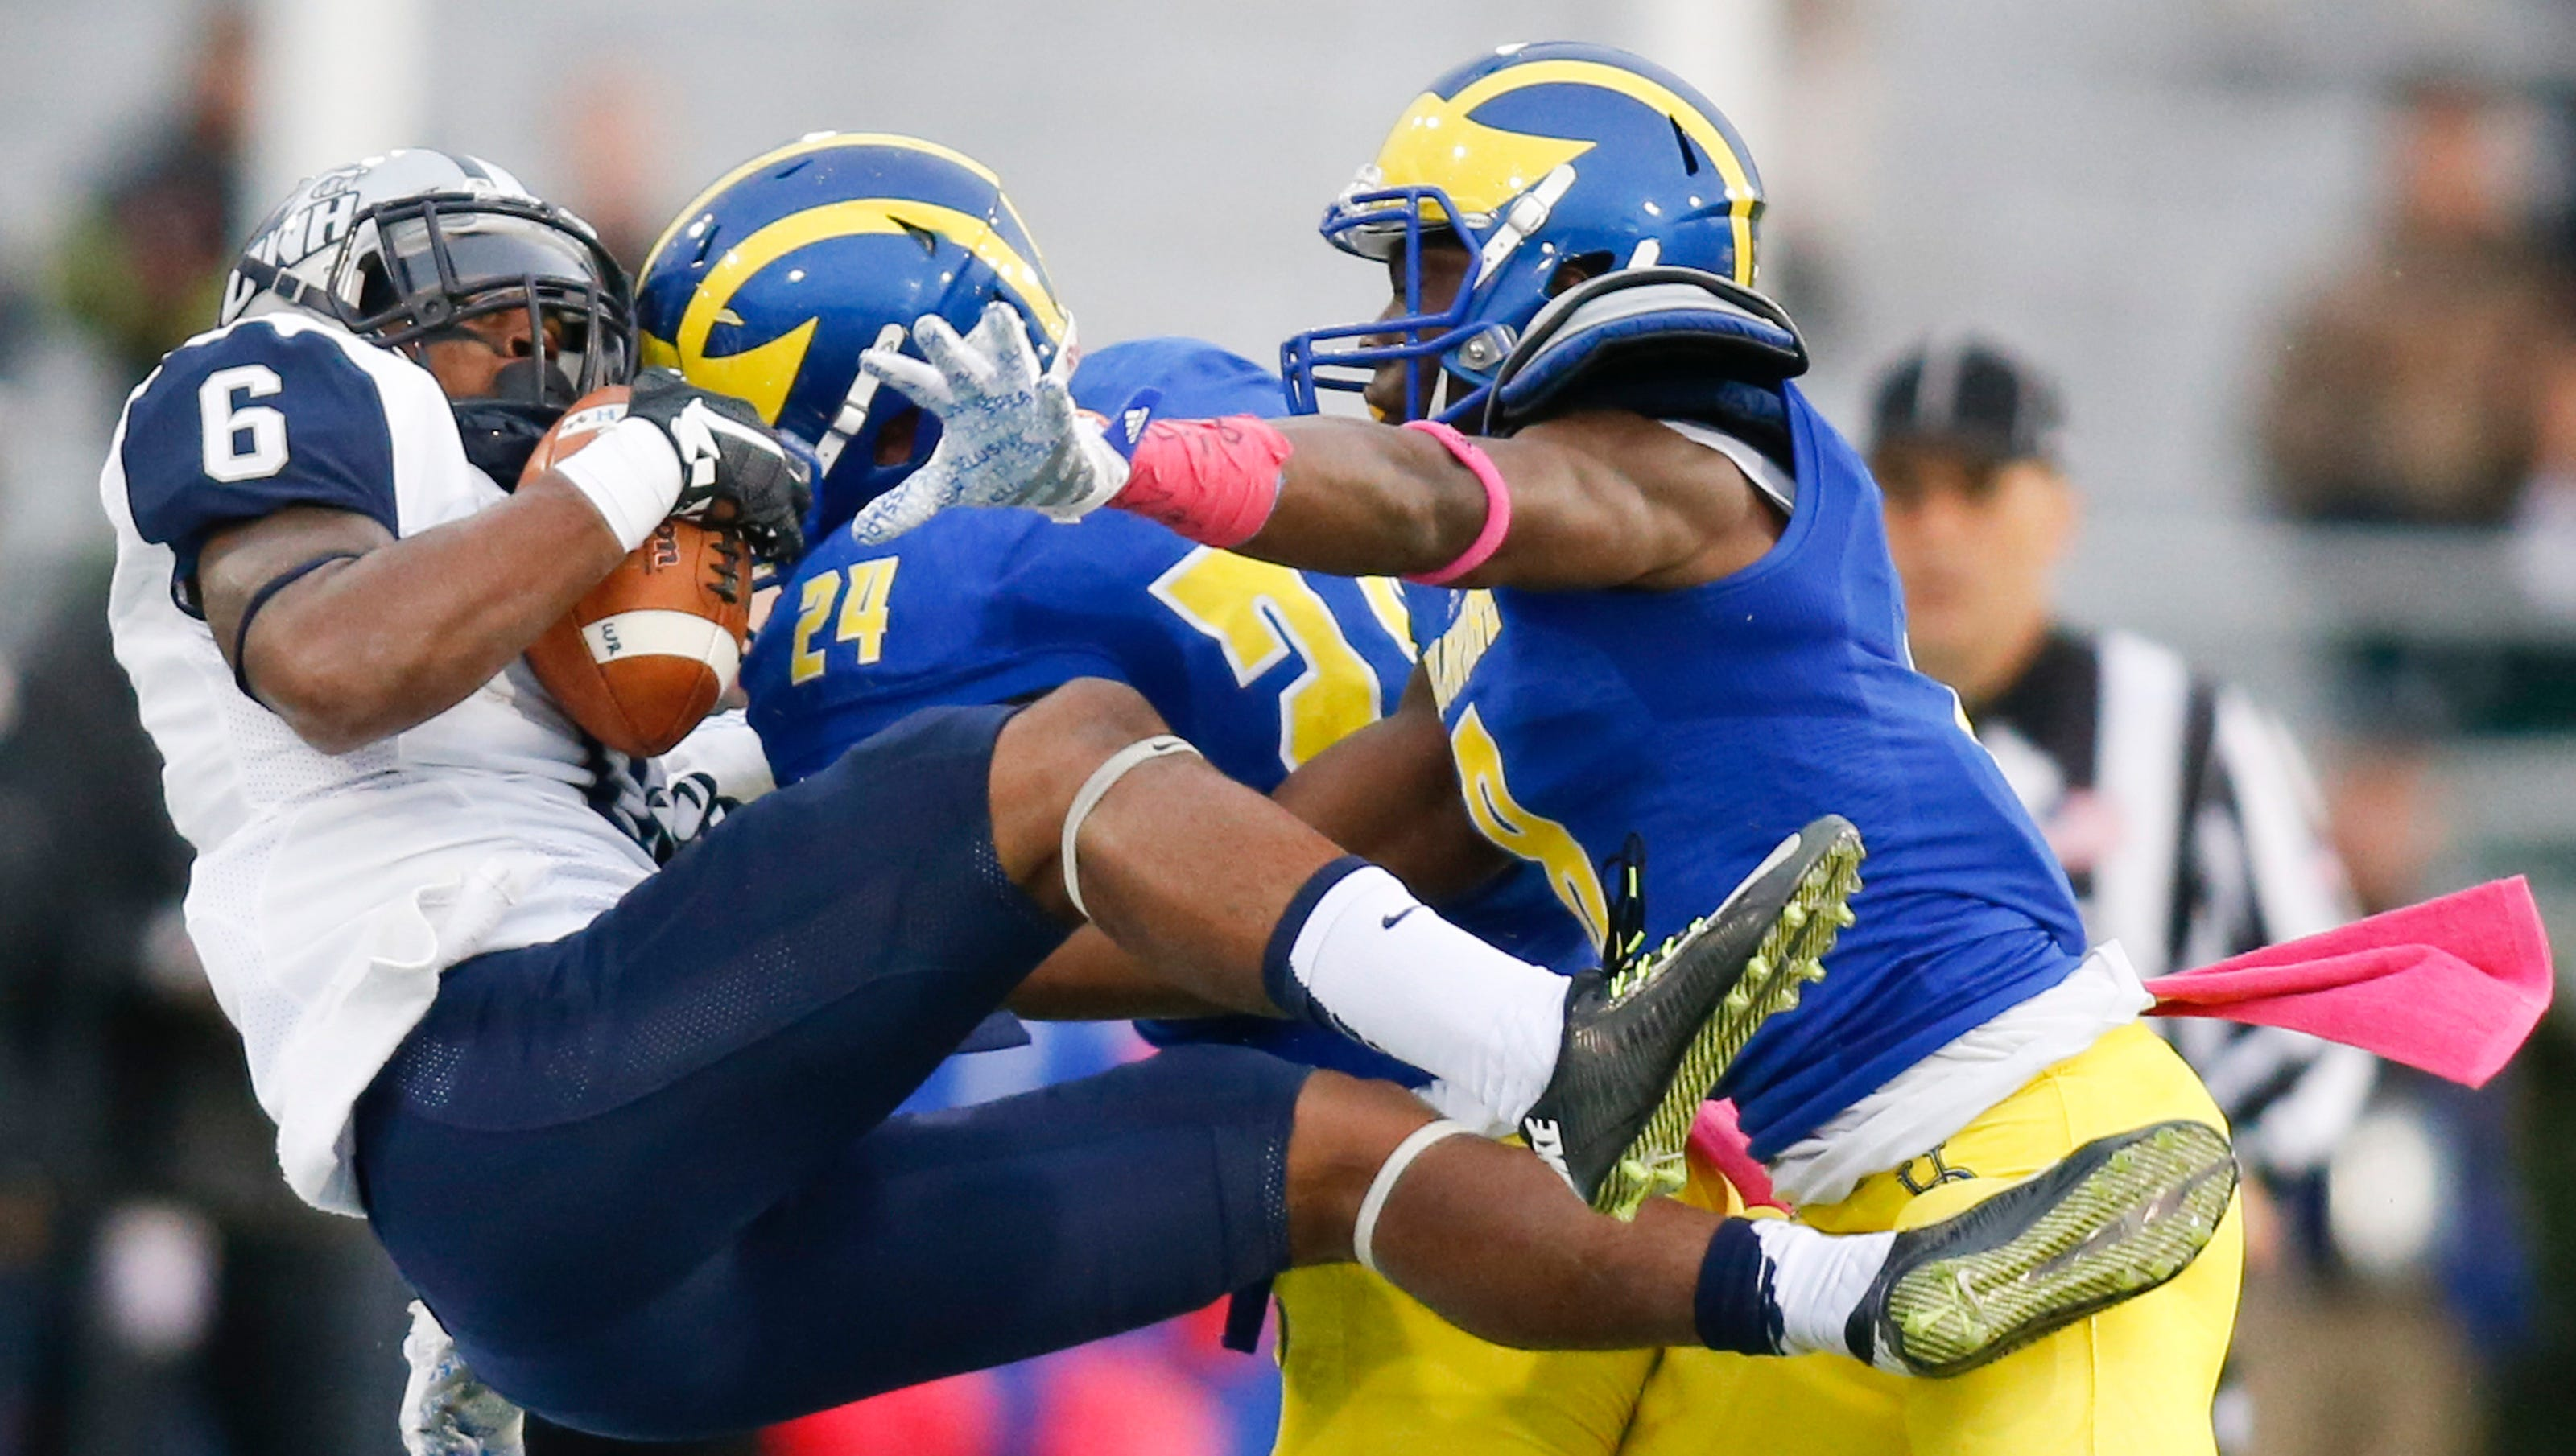 Delaware New Hampshire Football Meetings Infrequent But Memorable